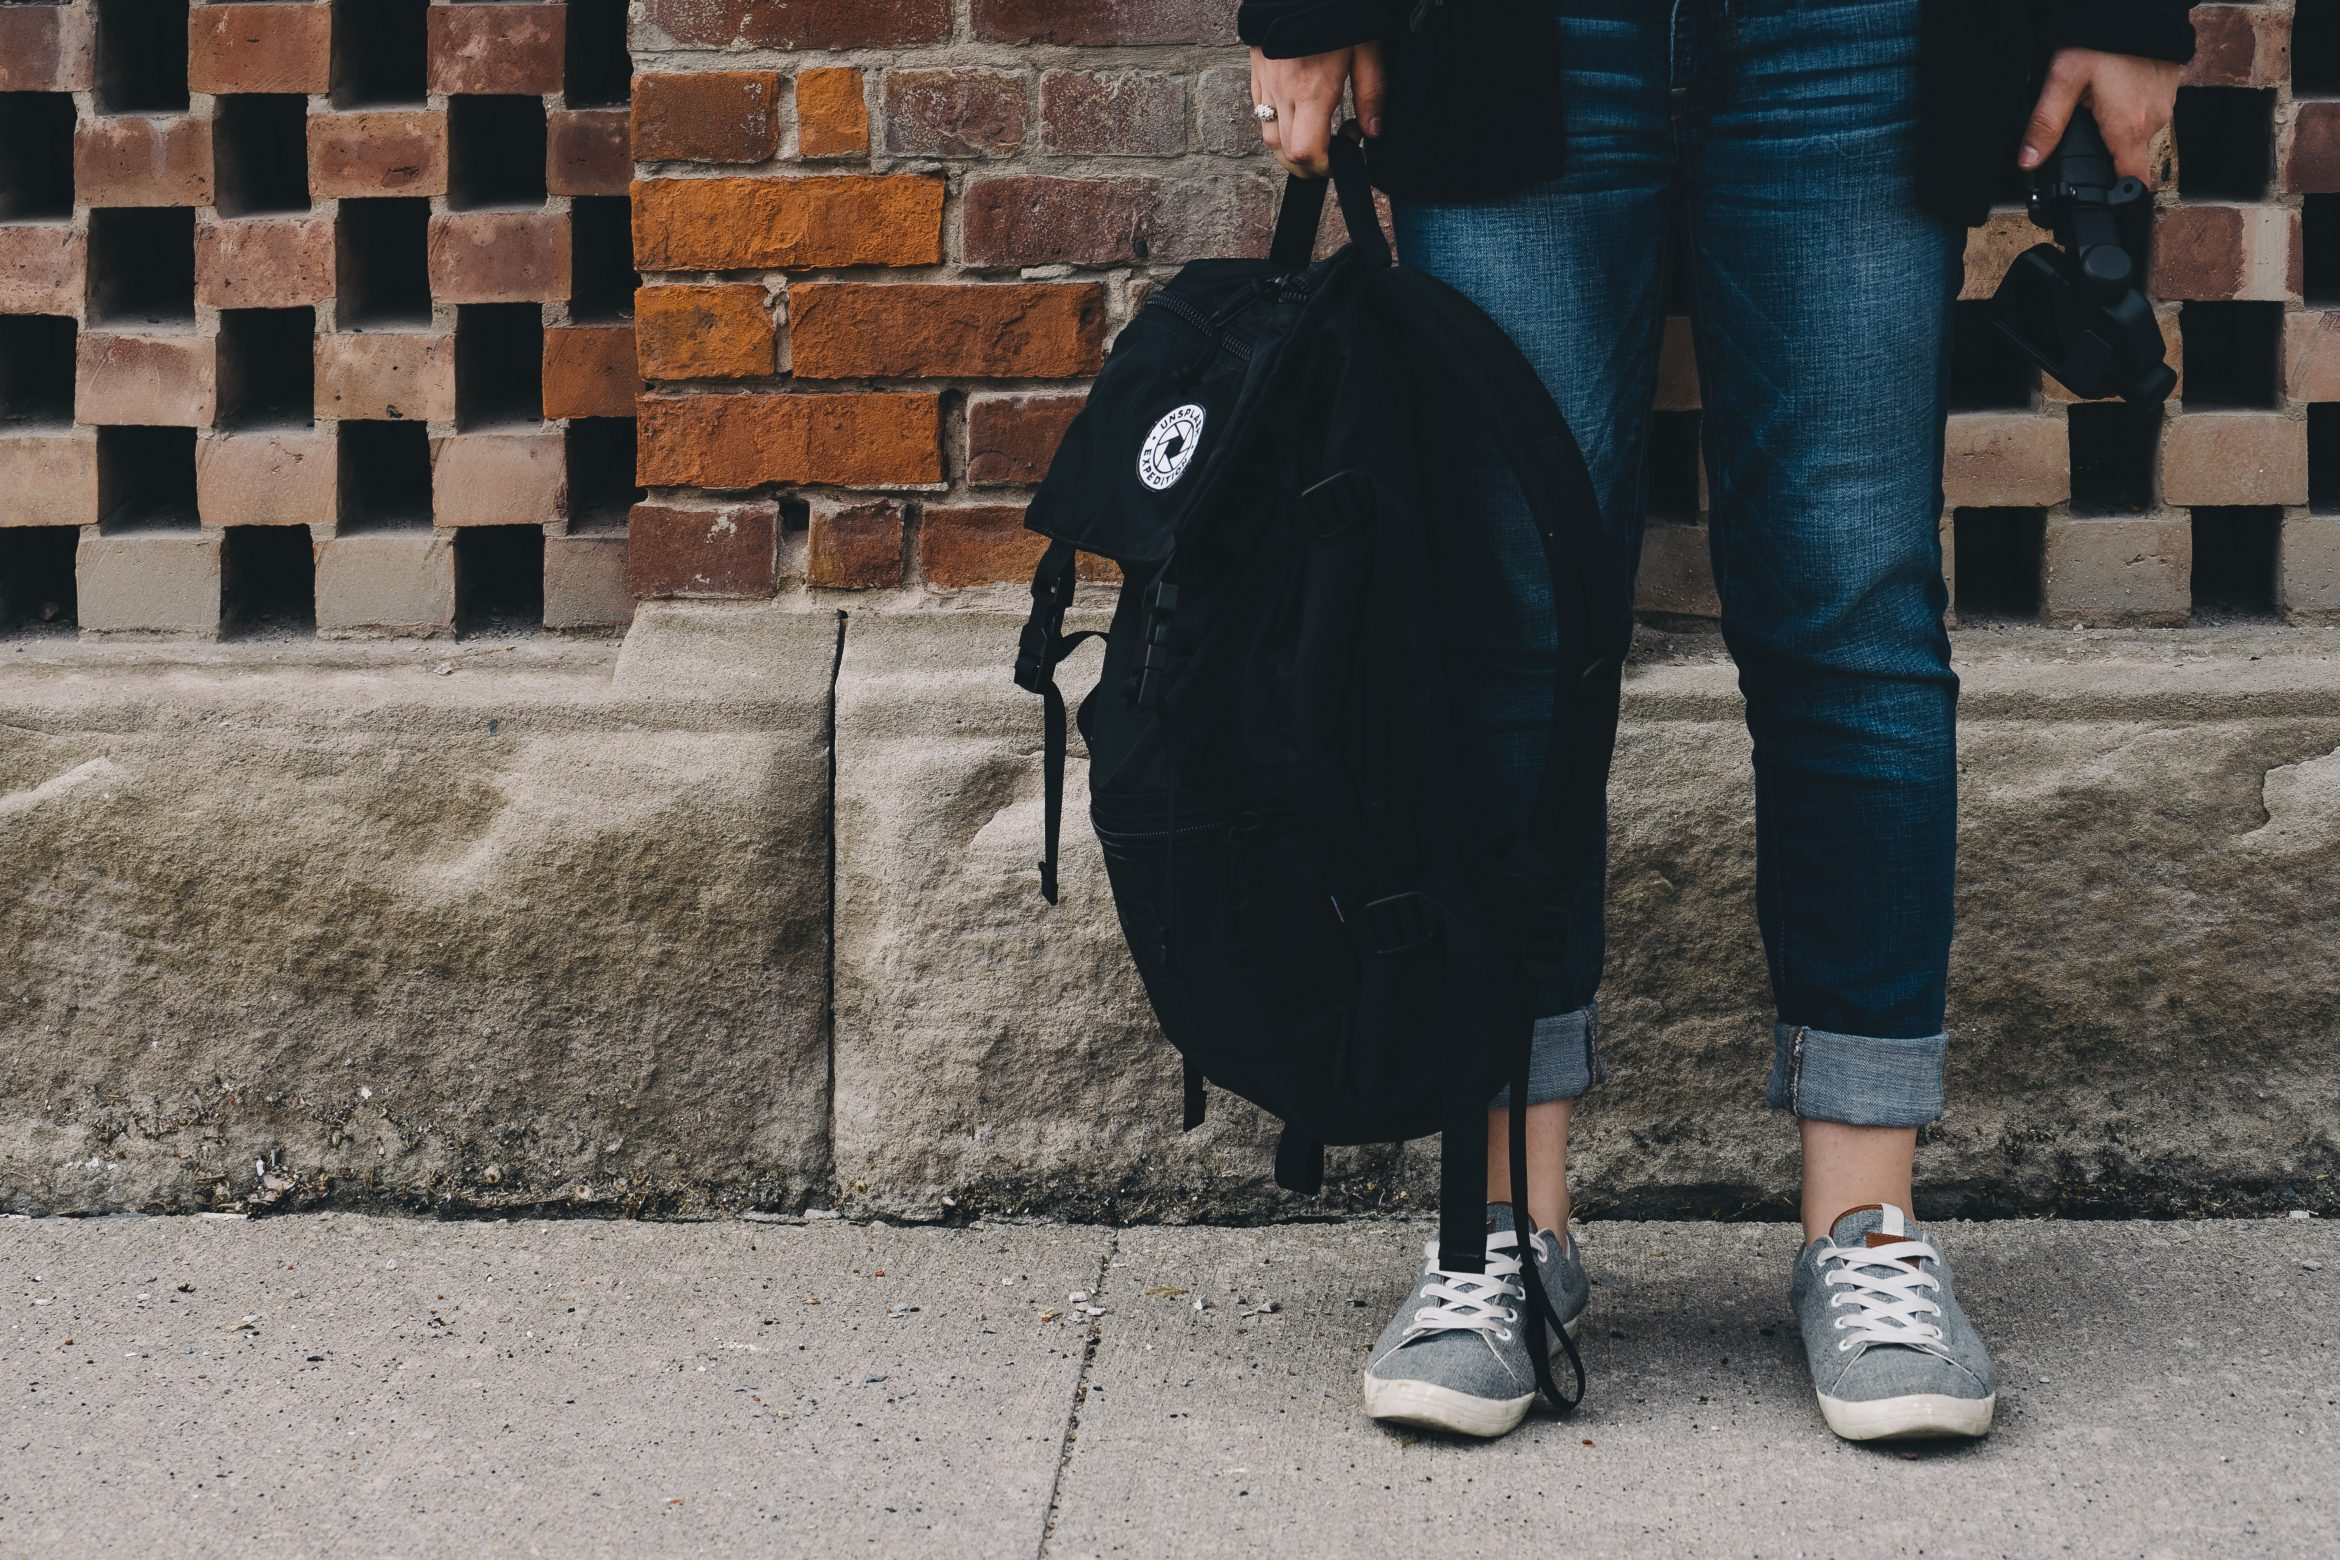 Gen Z's College Experience Is Going To Look Totally Different